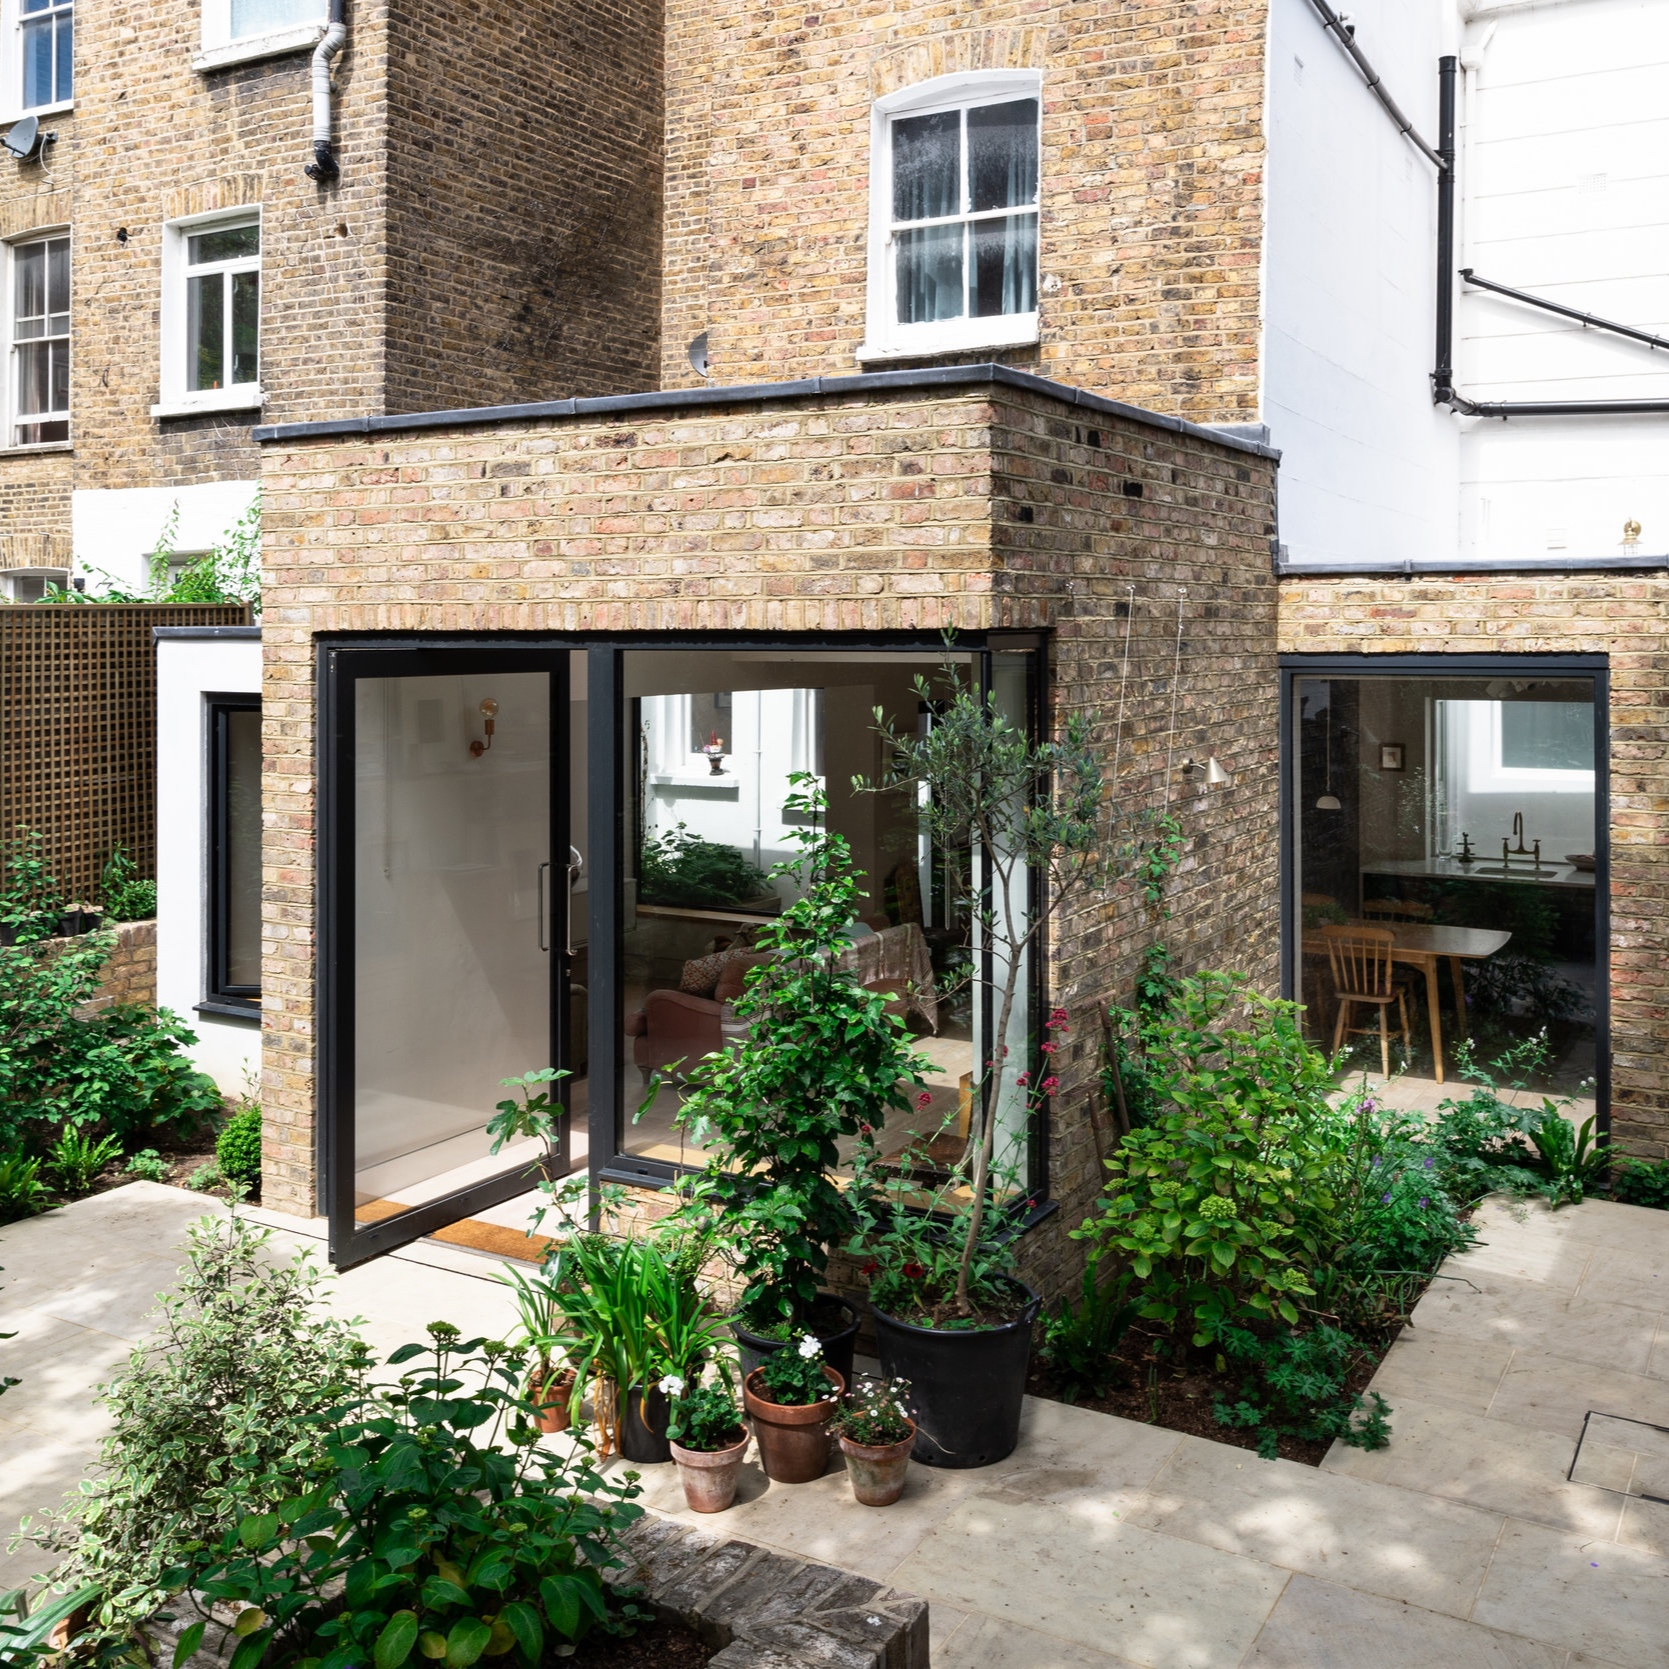 ELGIN AVENUE   a light filled family home within a secluded sunken garden in Maida Vale.